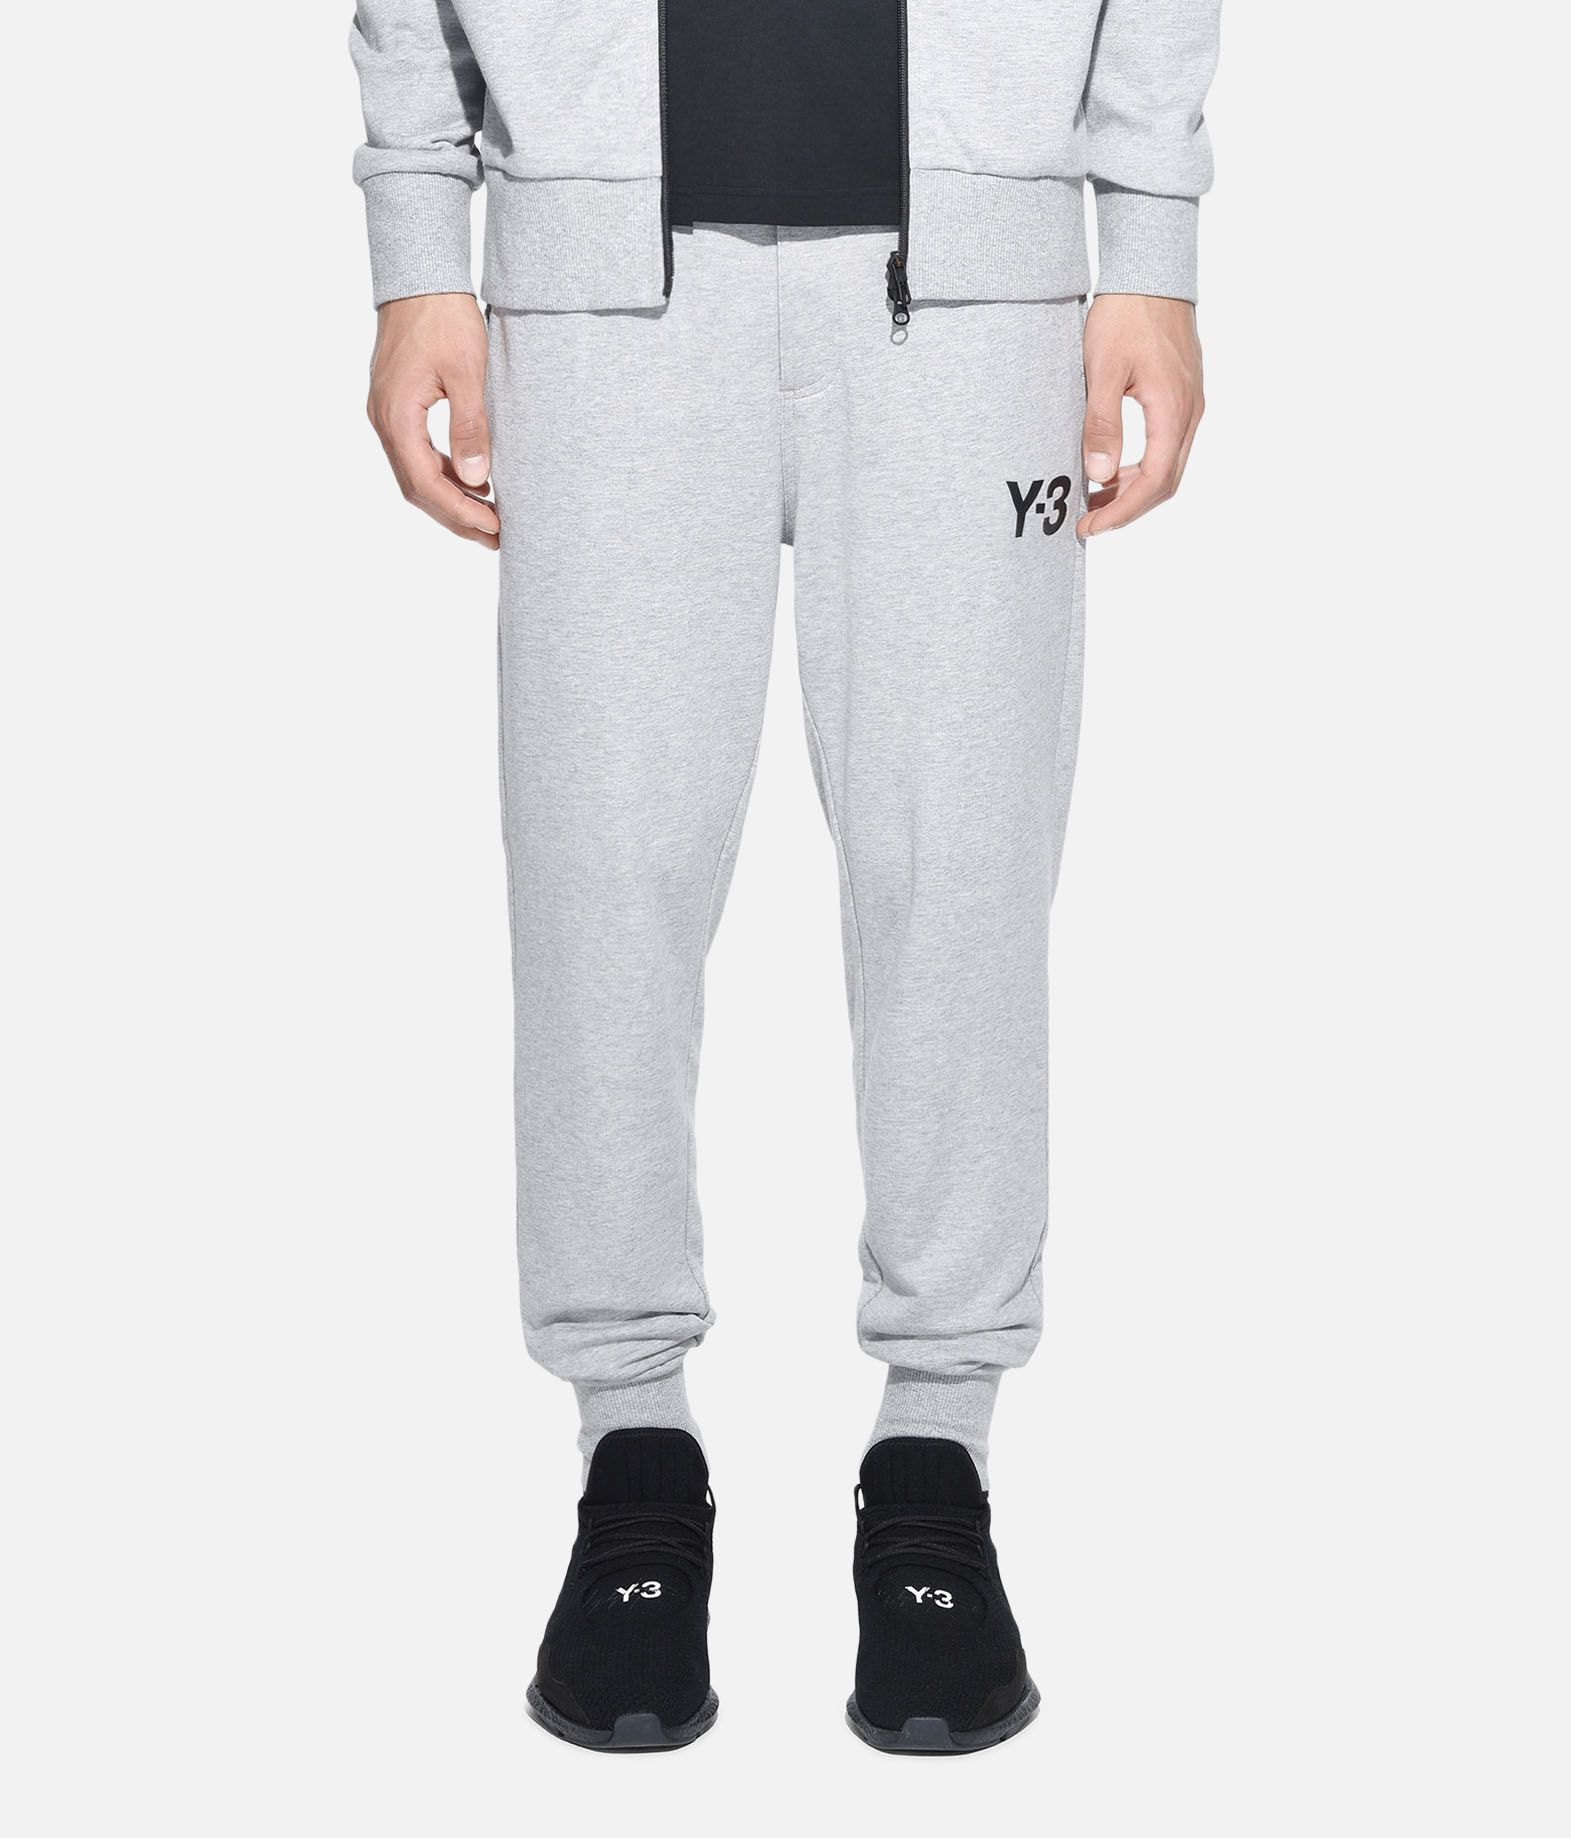 Y-3 Y-3 Classic Pants Sweatpants Man r